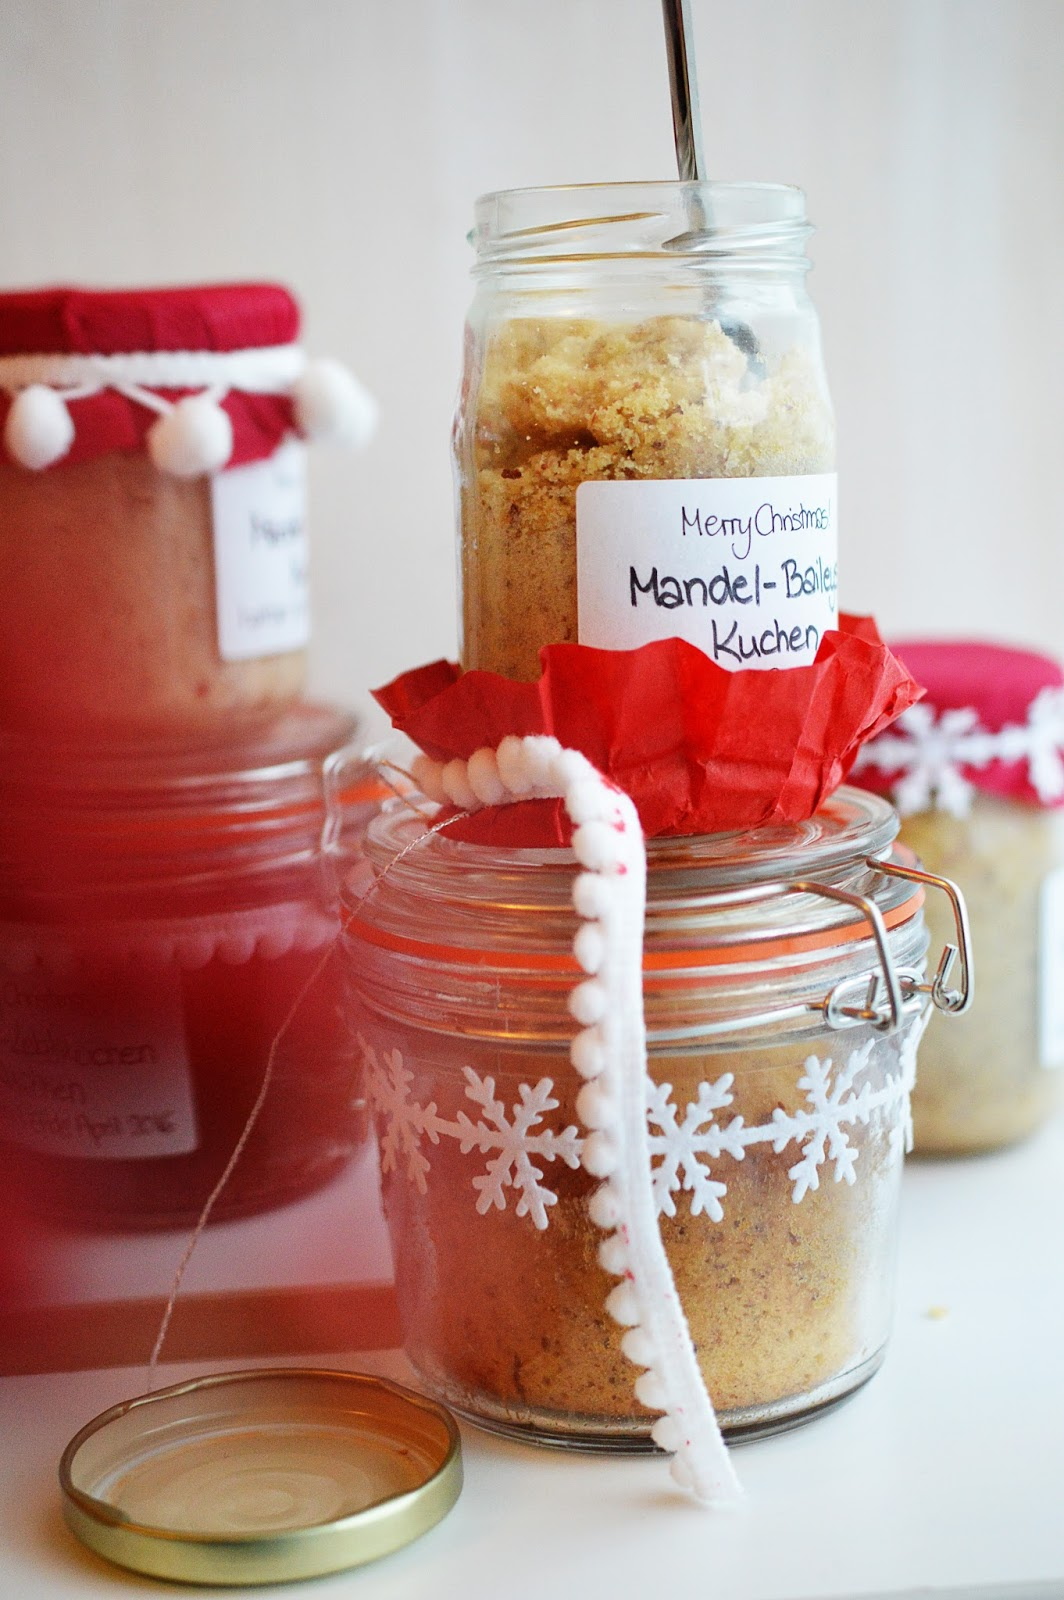 Almond & Baileys Cake in a Jar | Motte's Blog